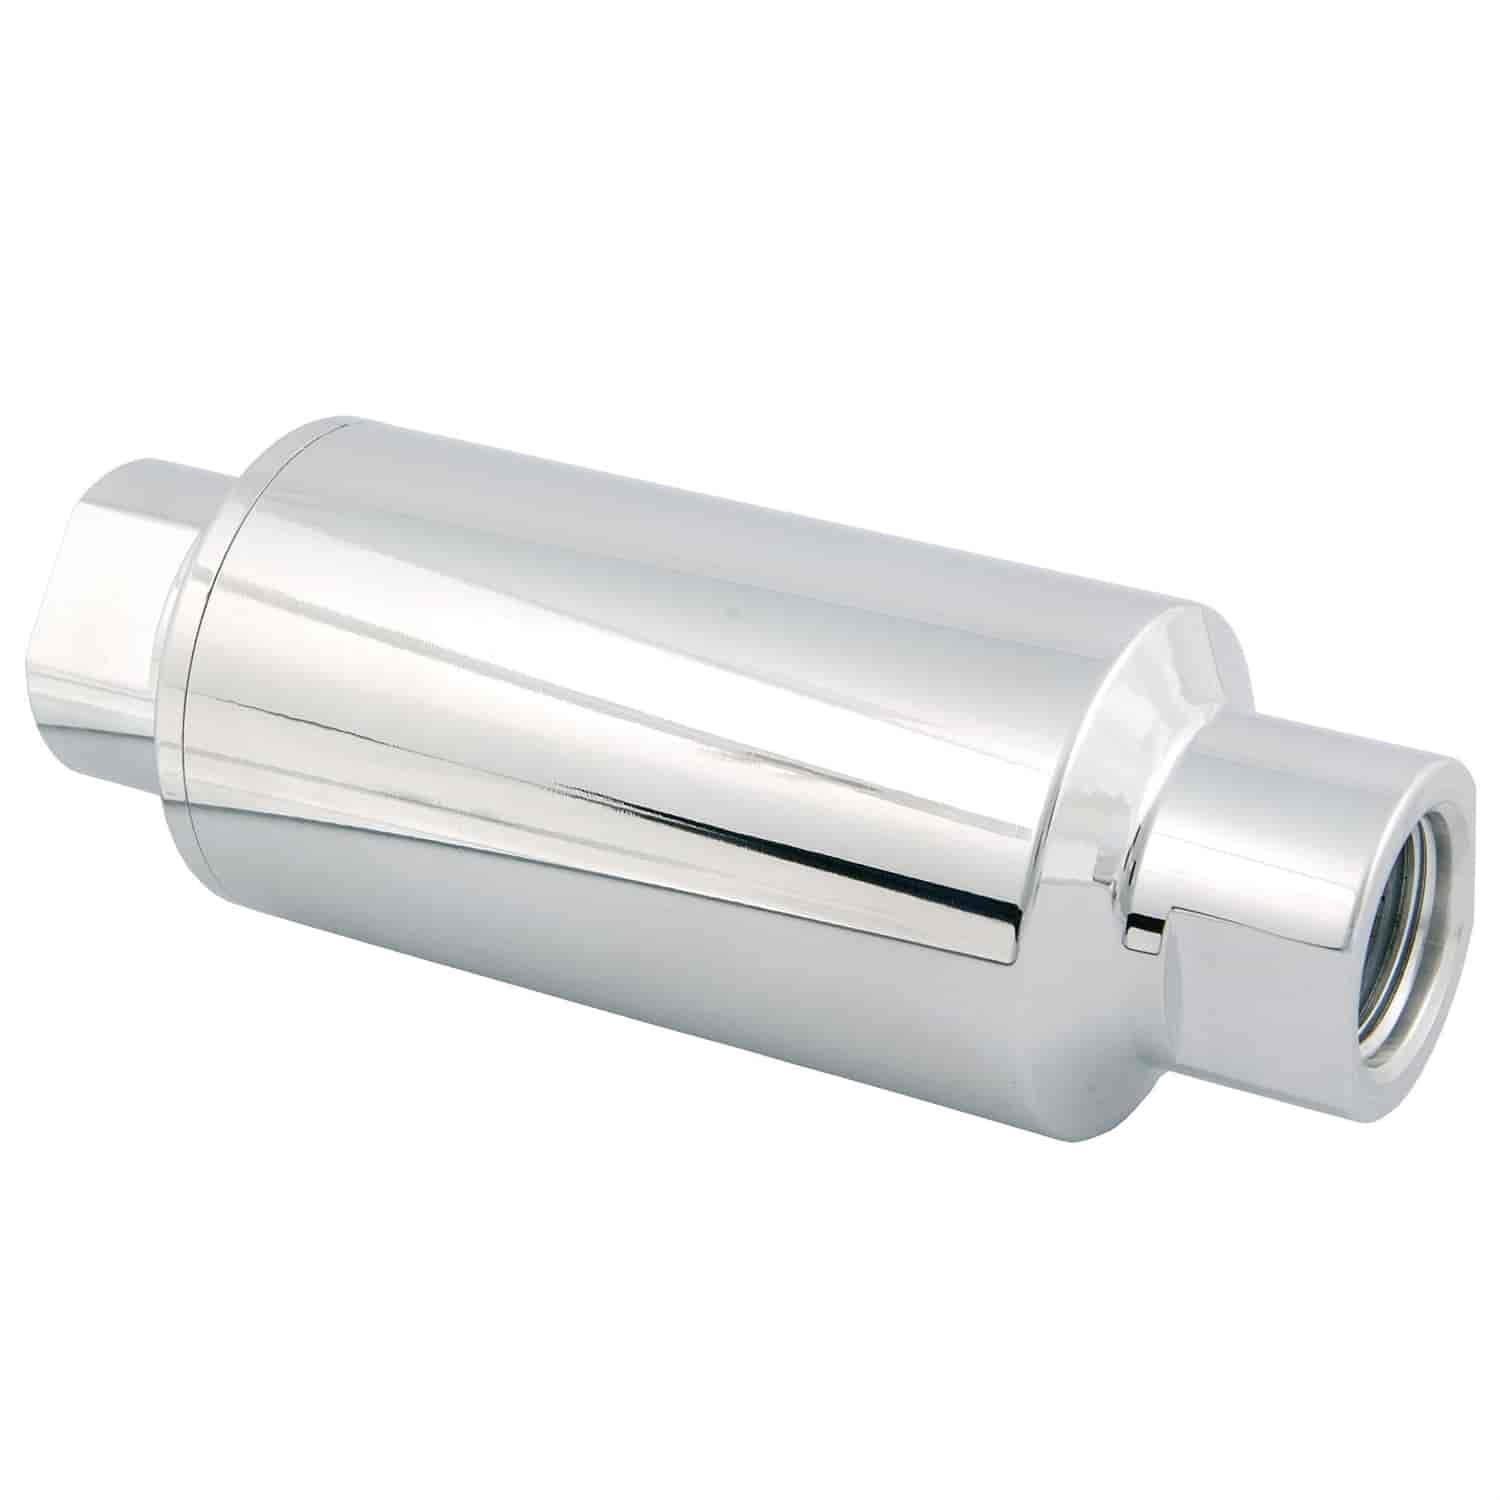 Aeromotive 12354 - Aeromotive In-Line Fuel Filters